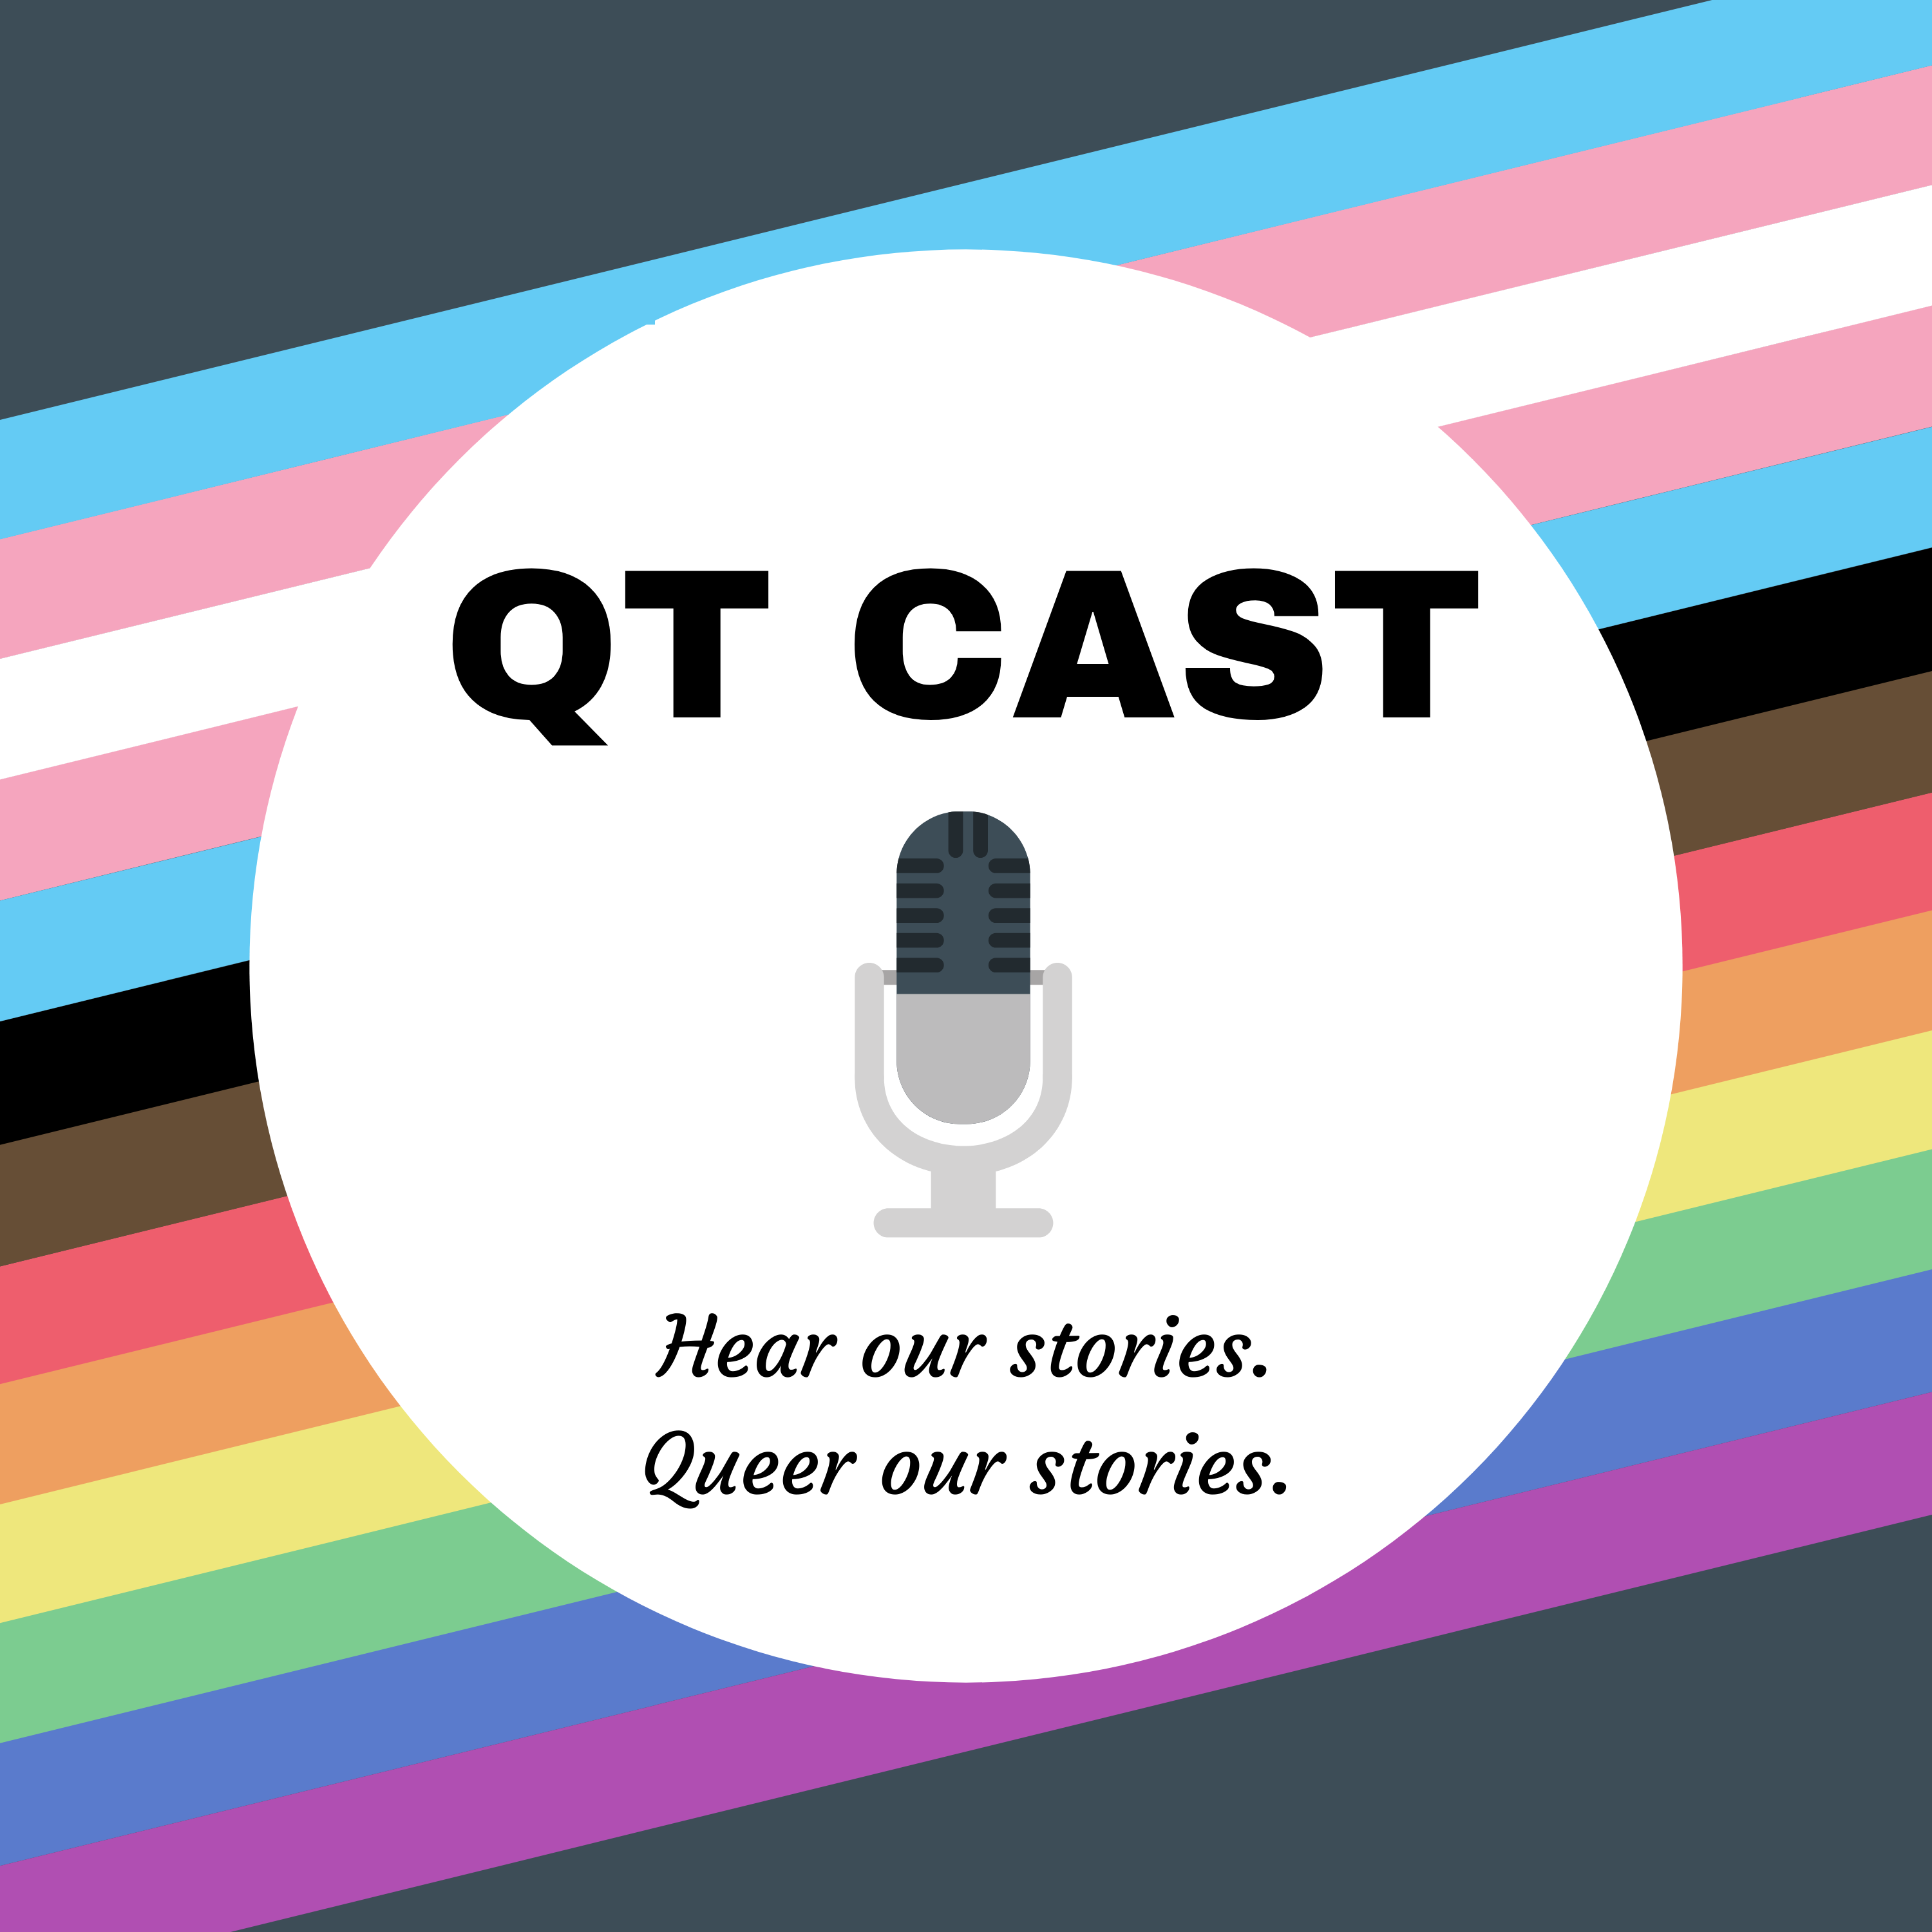 QT Cast Cover art featuring a microphone on a background with diagonal stripes in trans and queer pride colors